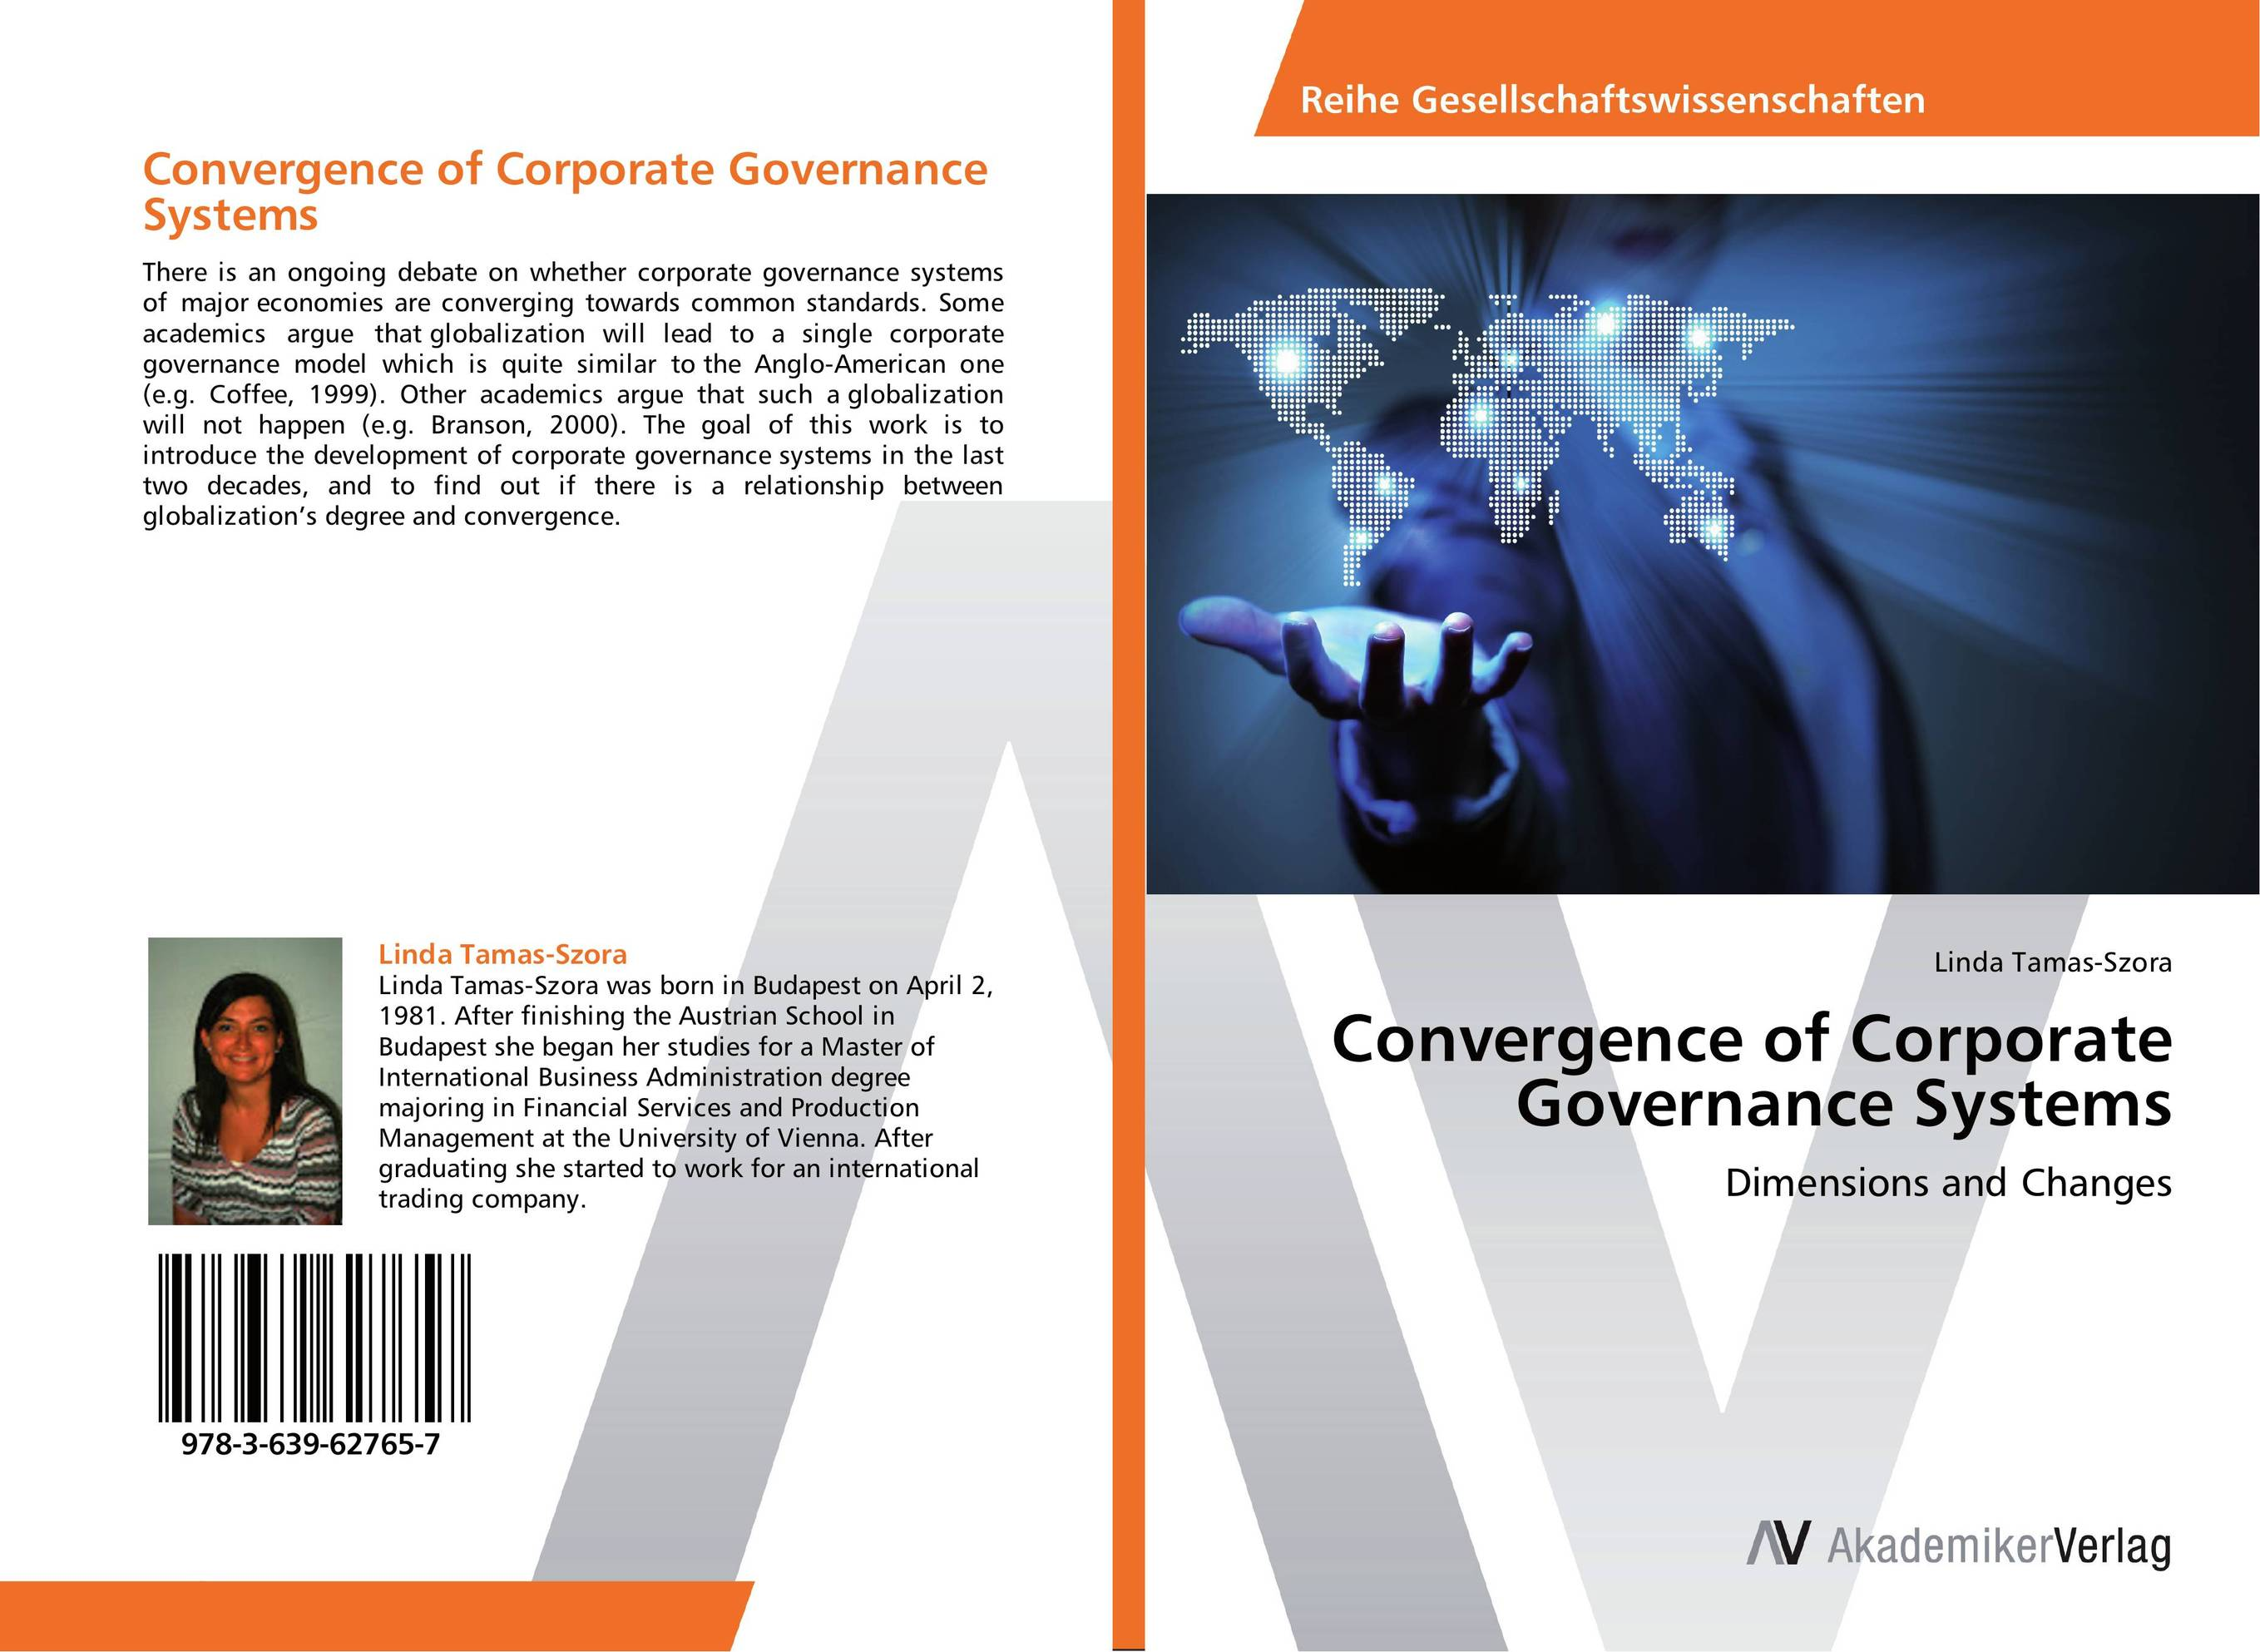 Convergence of Corporate Governance Systems corporate governance audit quality and opportunistic earnings